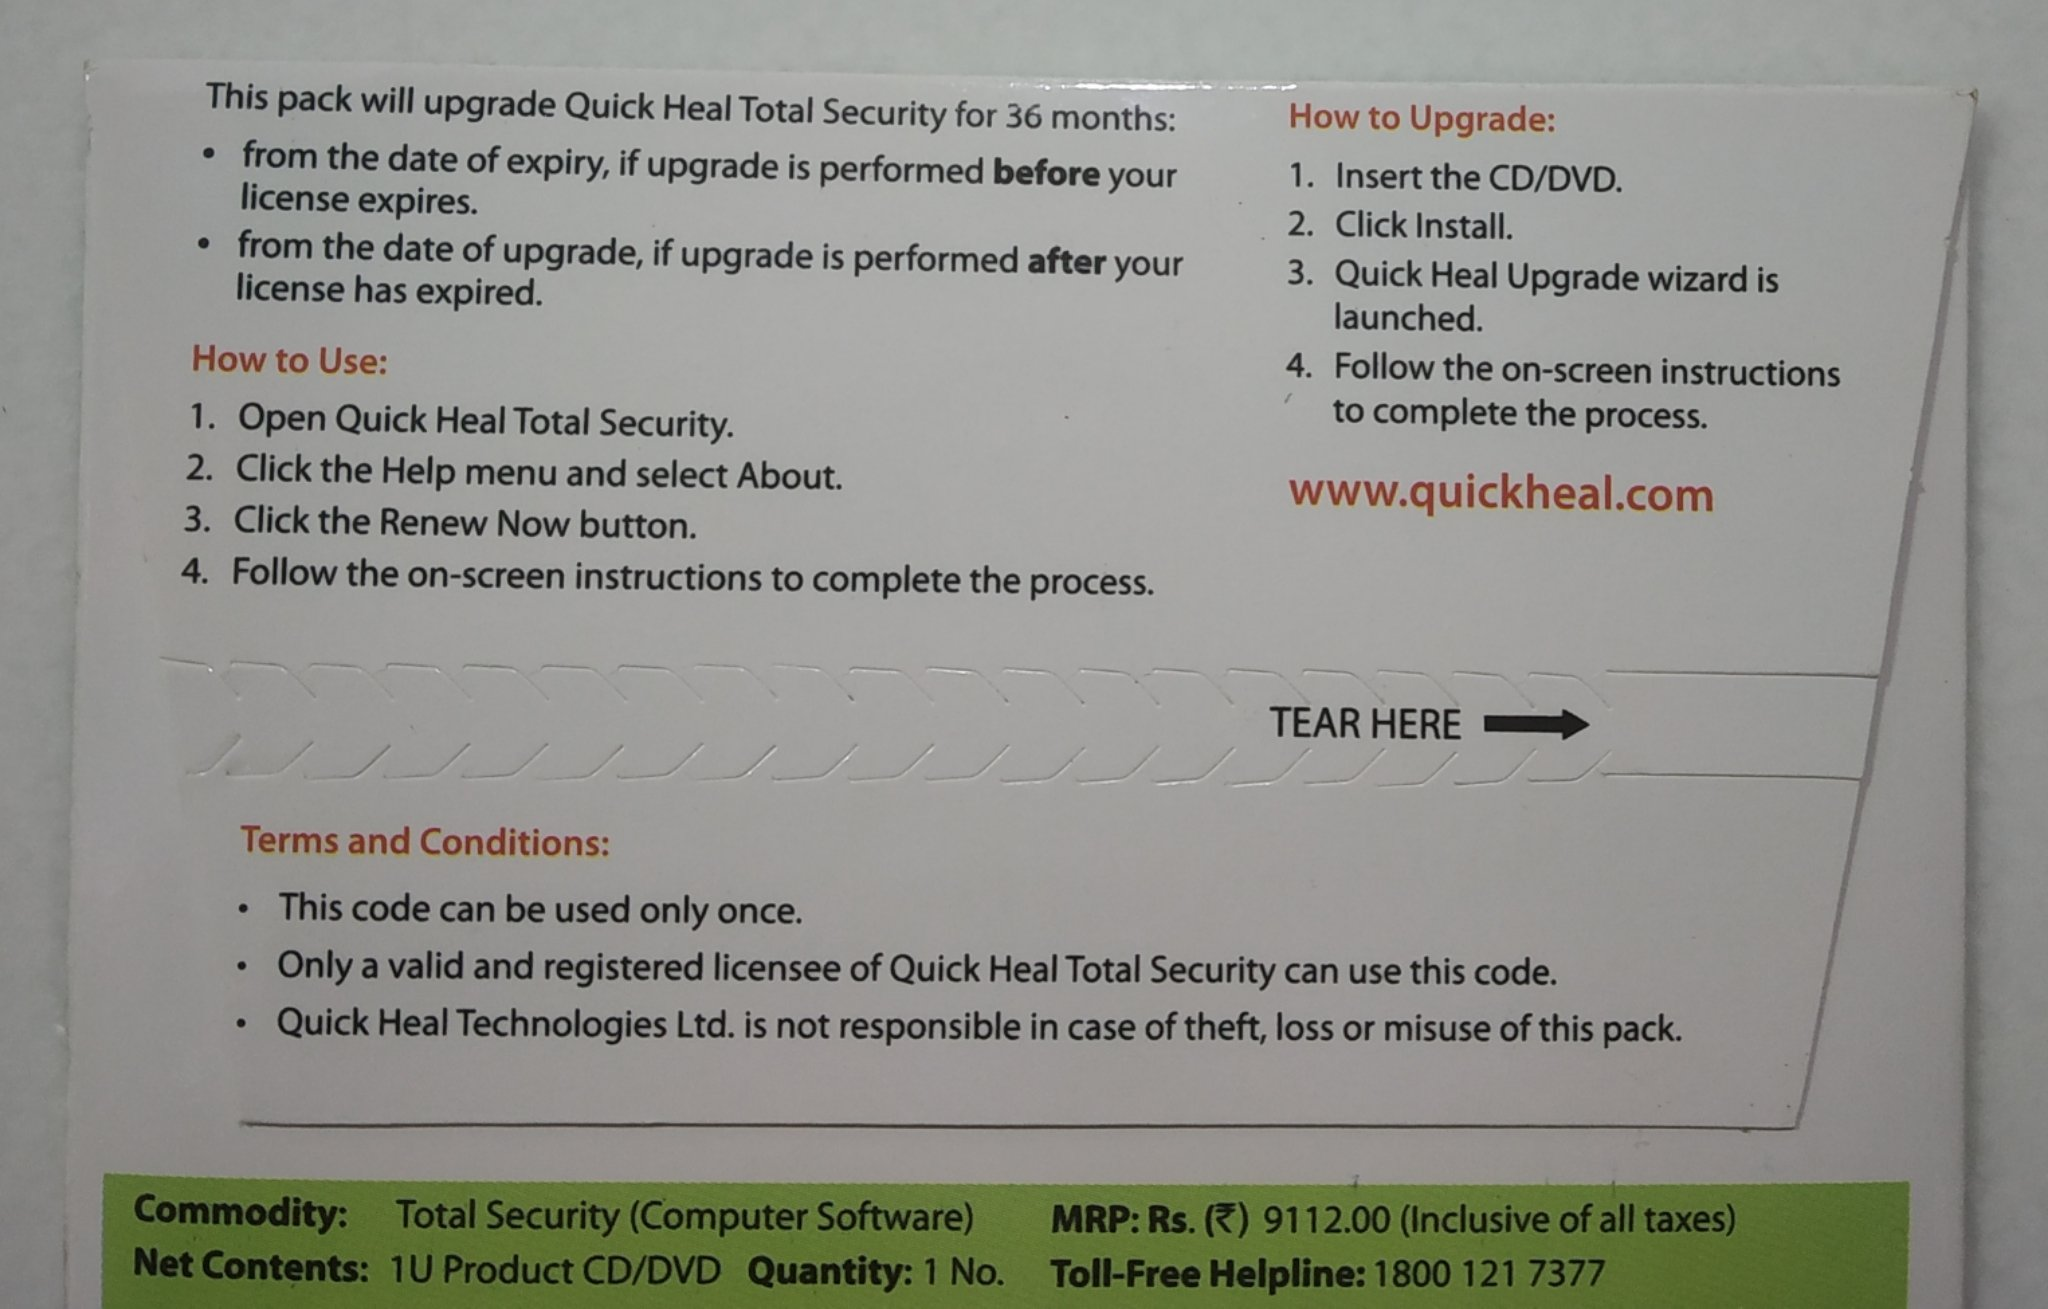 Renewal, 5 User, 3 Year, Quick Heal Total Security, Rs 4940